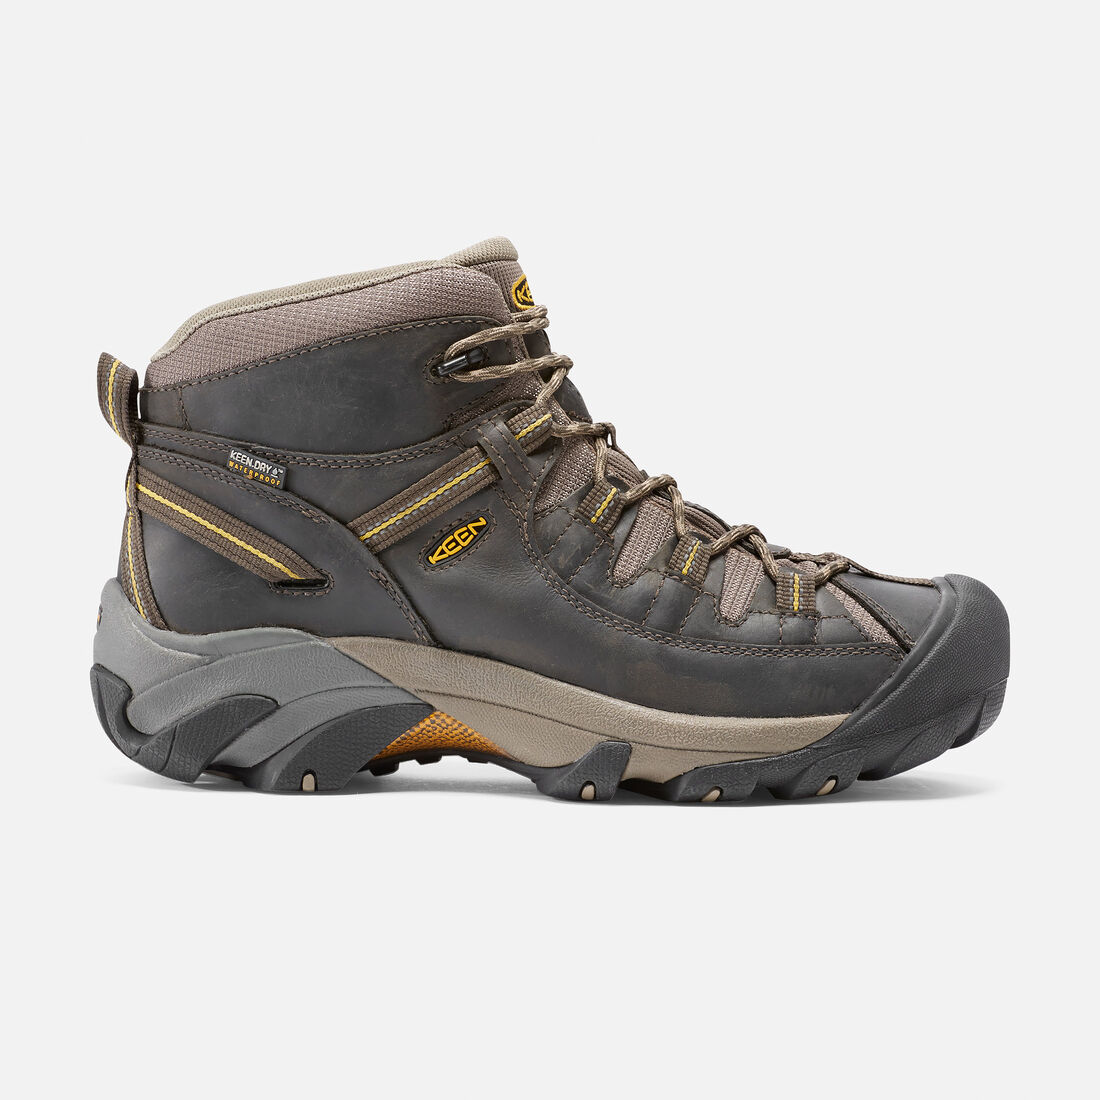 Men's Targhee II Mid Wide in Black Olive/Yellow - large view.